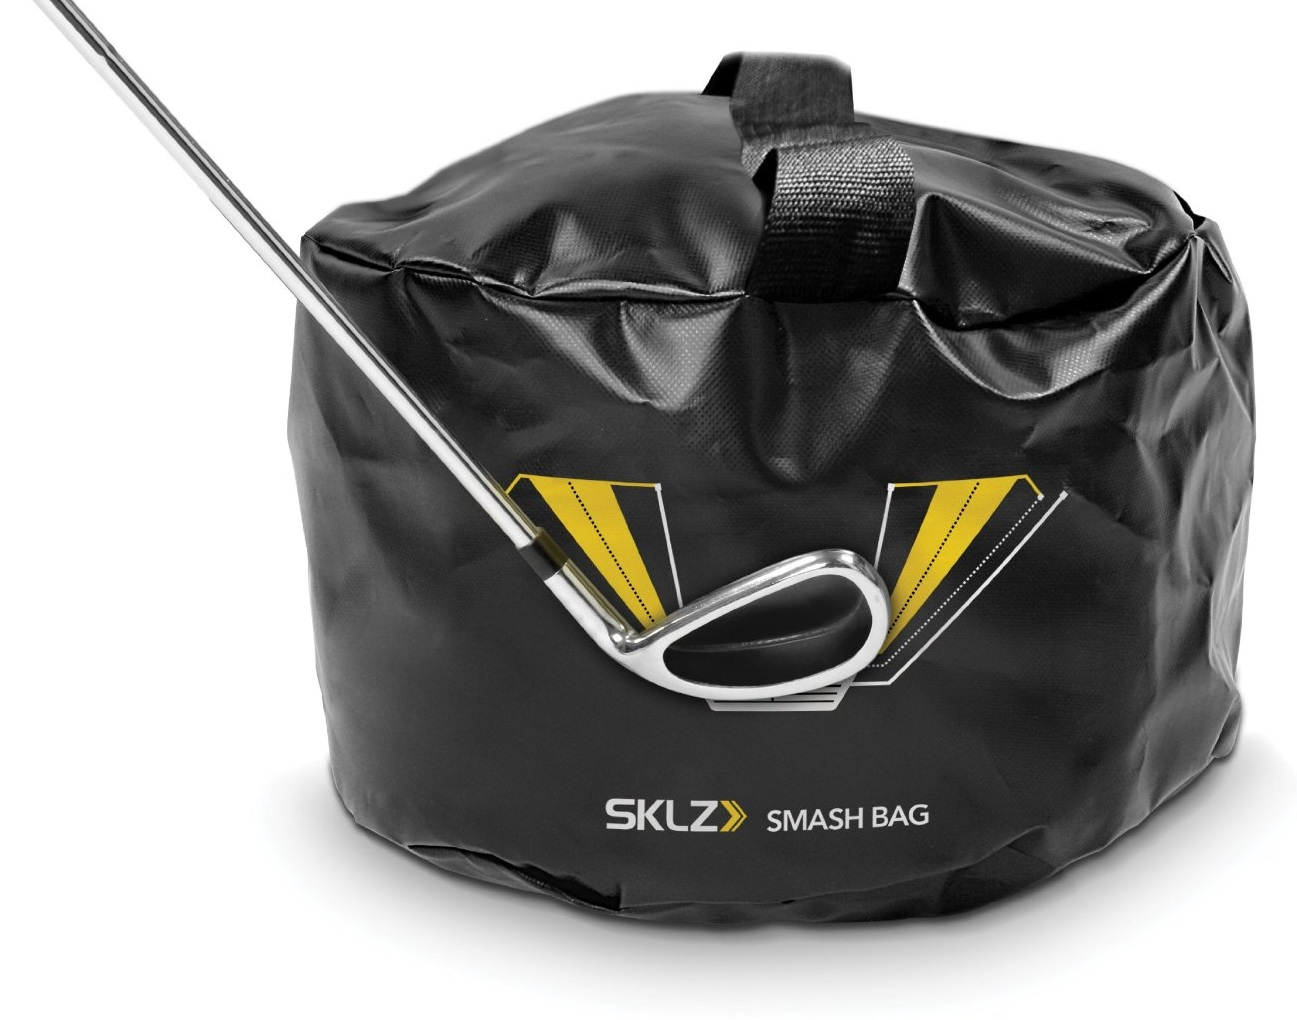 SKLZ Smash Bag Golf Impact Trainer Product